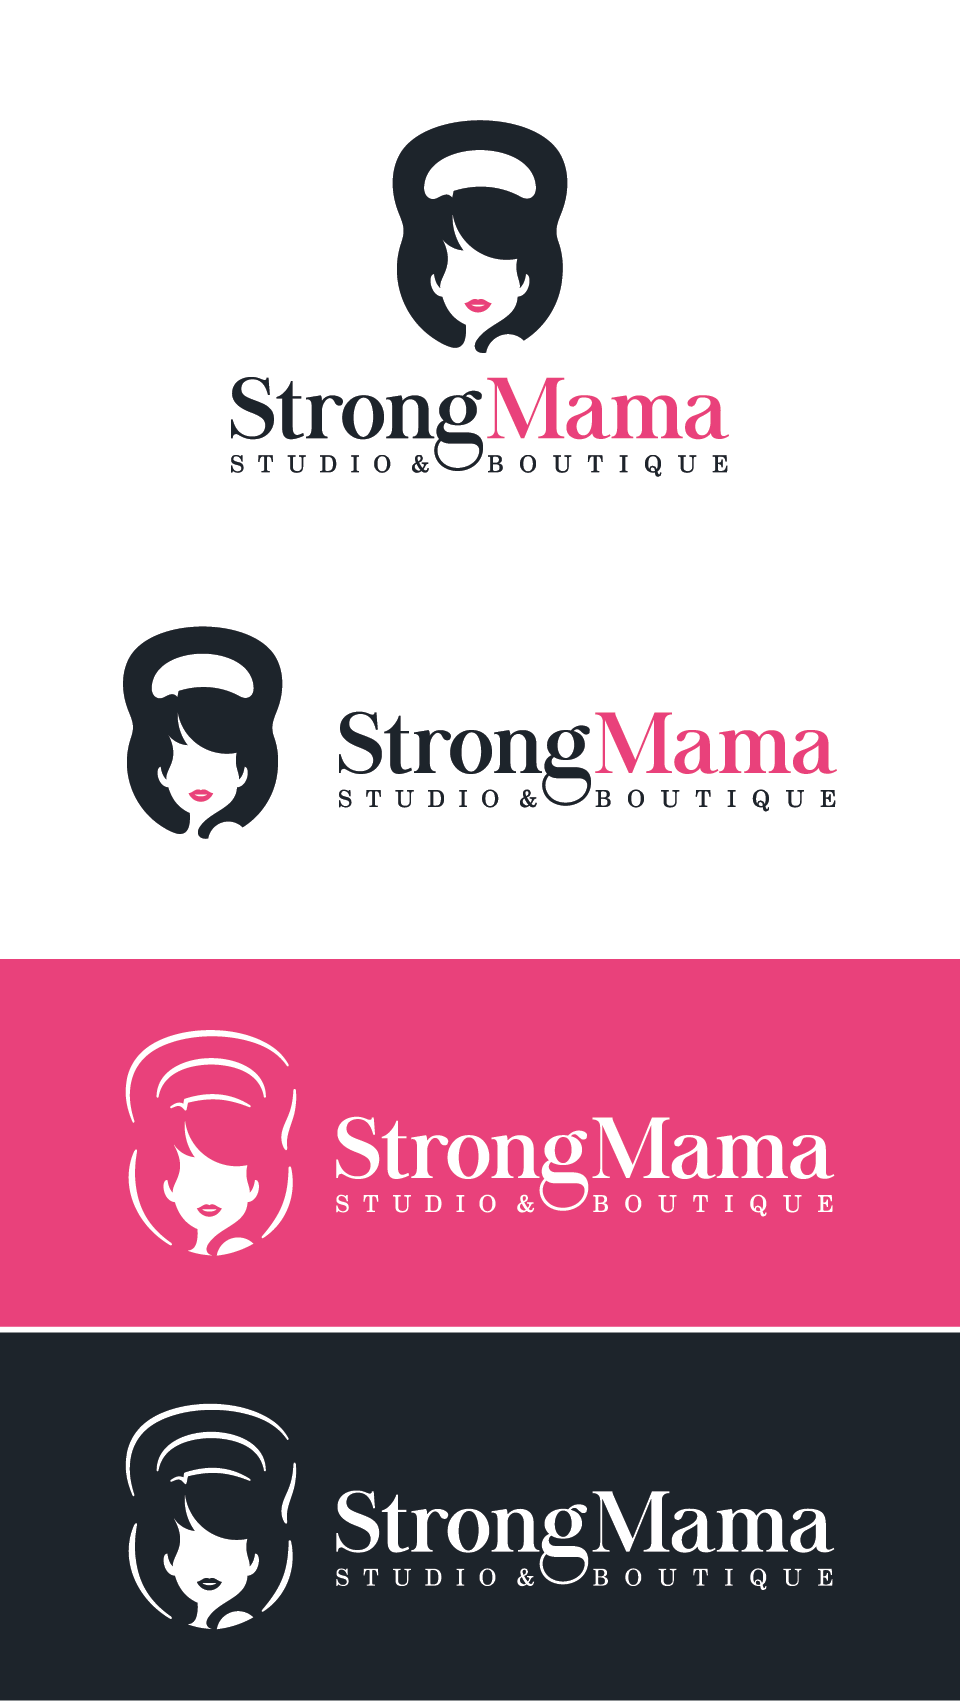 Modern Fitness Boutique logo needed!